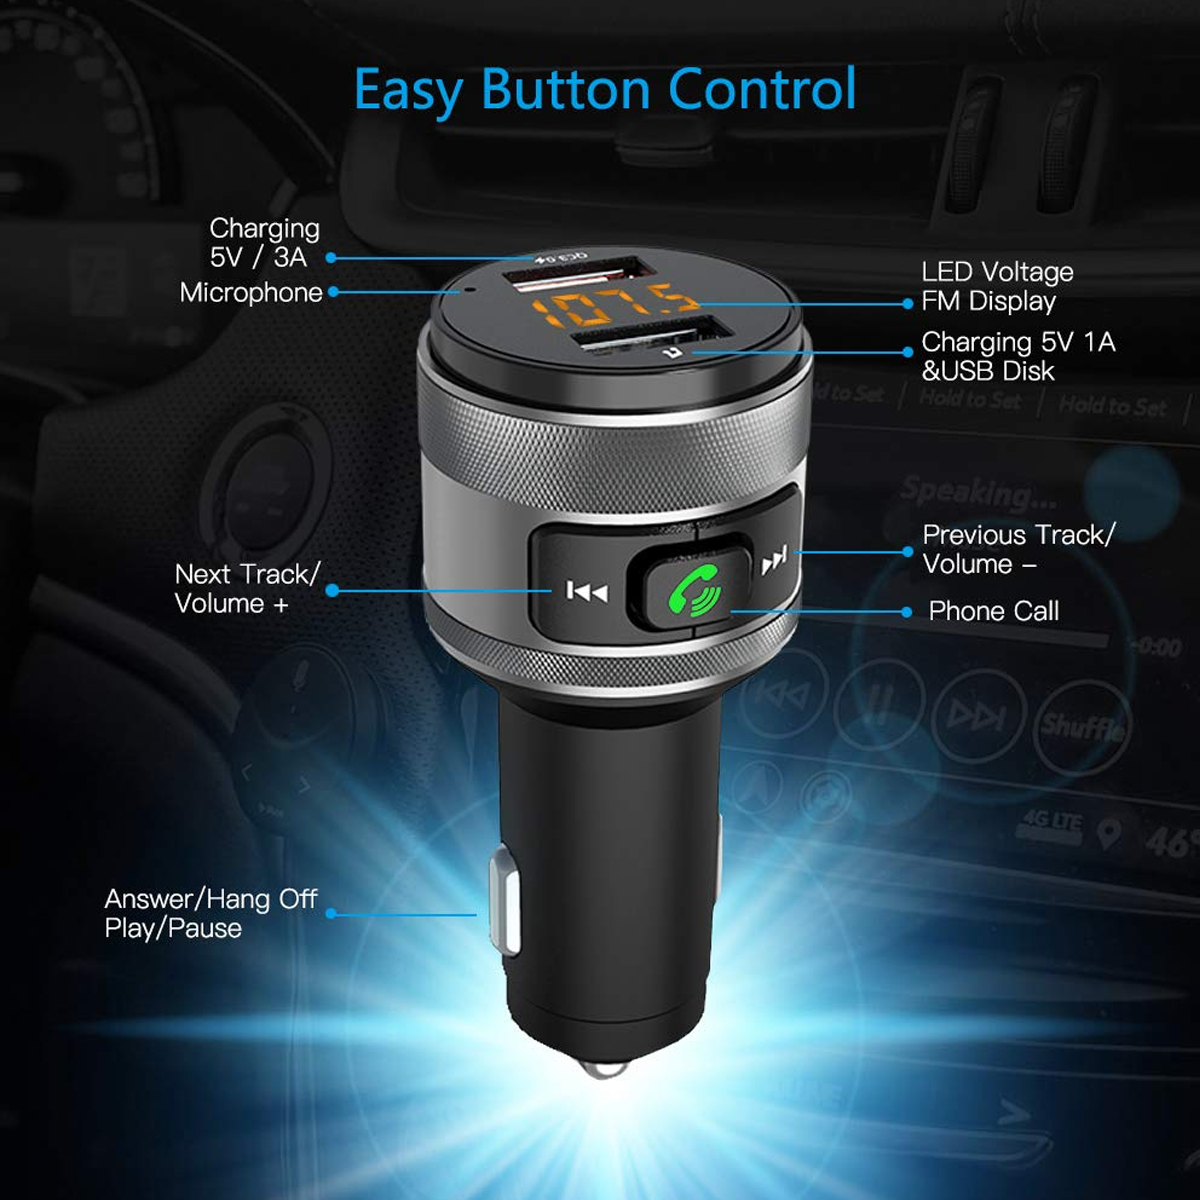 C57 Dual USB Ports Quick charge 3.0 <font><b>Car</b></font> <font><b>Charger</b></font> <font><b>Bluetooth</b></font> <font><b>FM</b></font> <font><b>Transmitter</b></font> <font><b>Car</b></font> Kit <font><b>MP3</b></font> Music Player Wireless <font><b>FM</b></font> Radio <font><b>Adapter</b></font> image